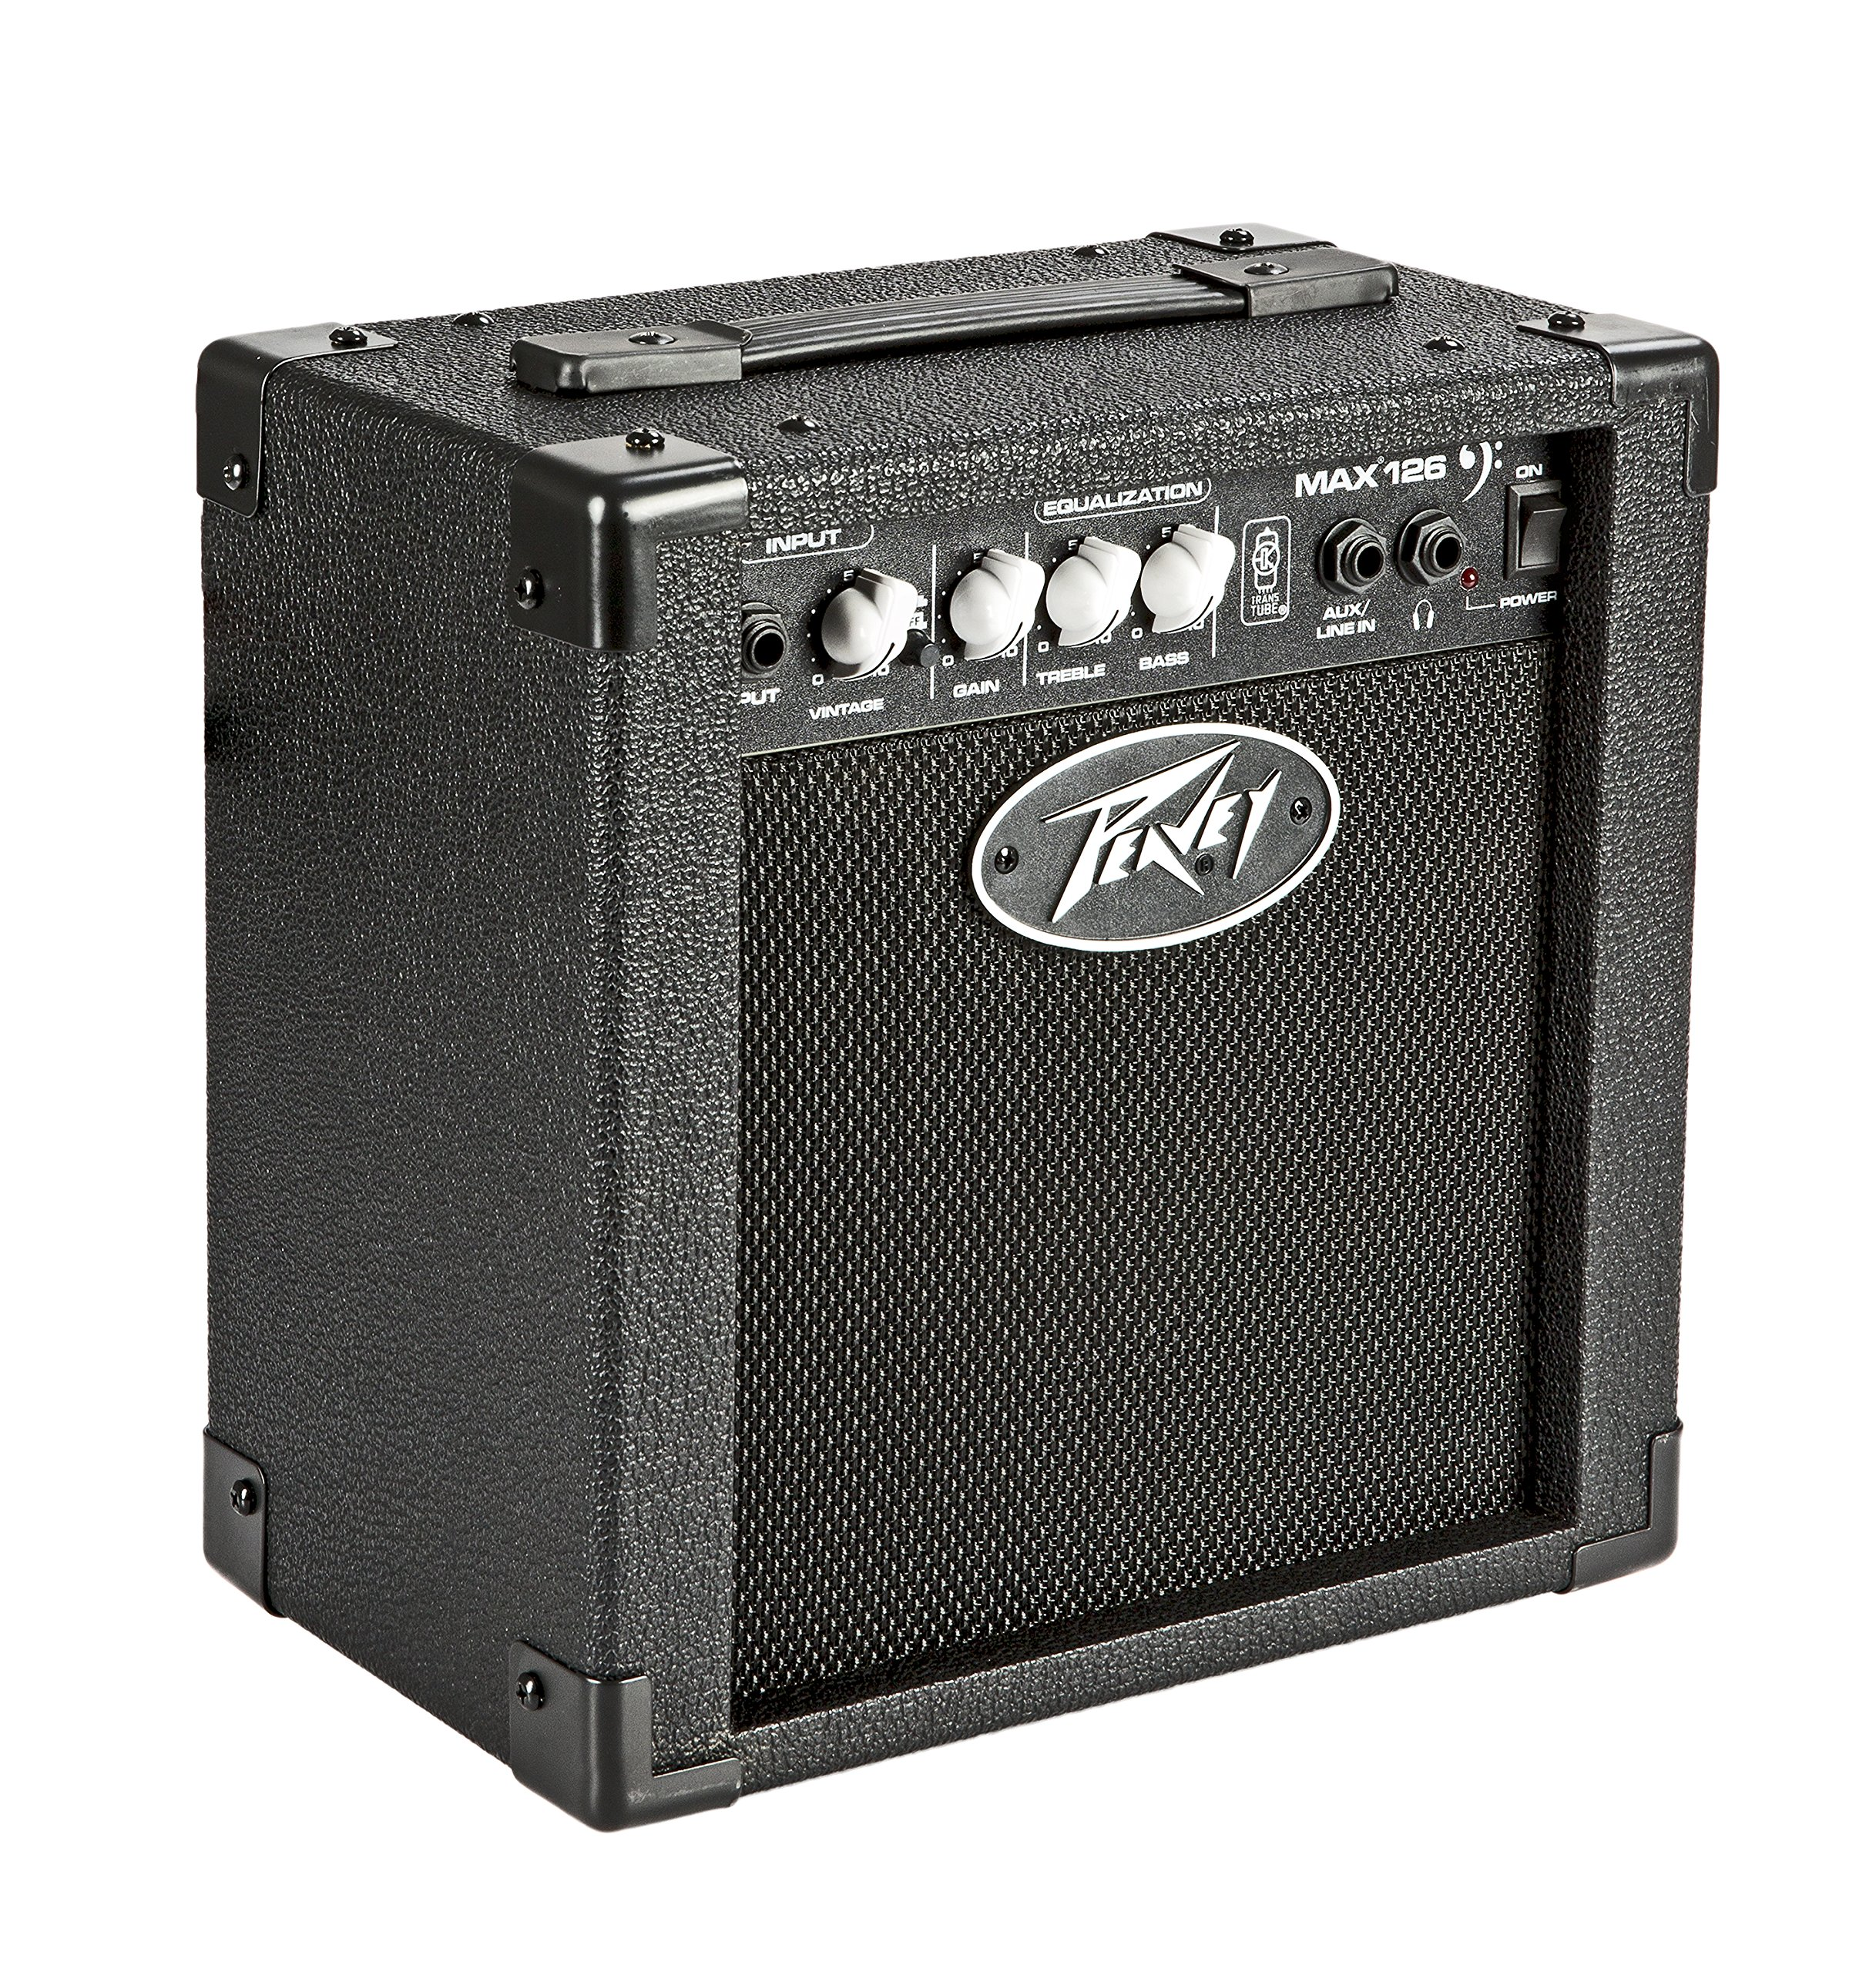 Peavey  Max 126 Bass Combo Amplifier by Peavey